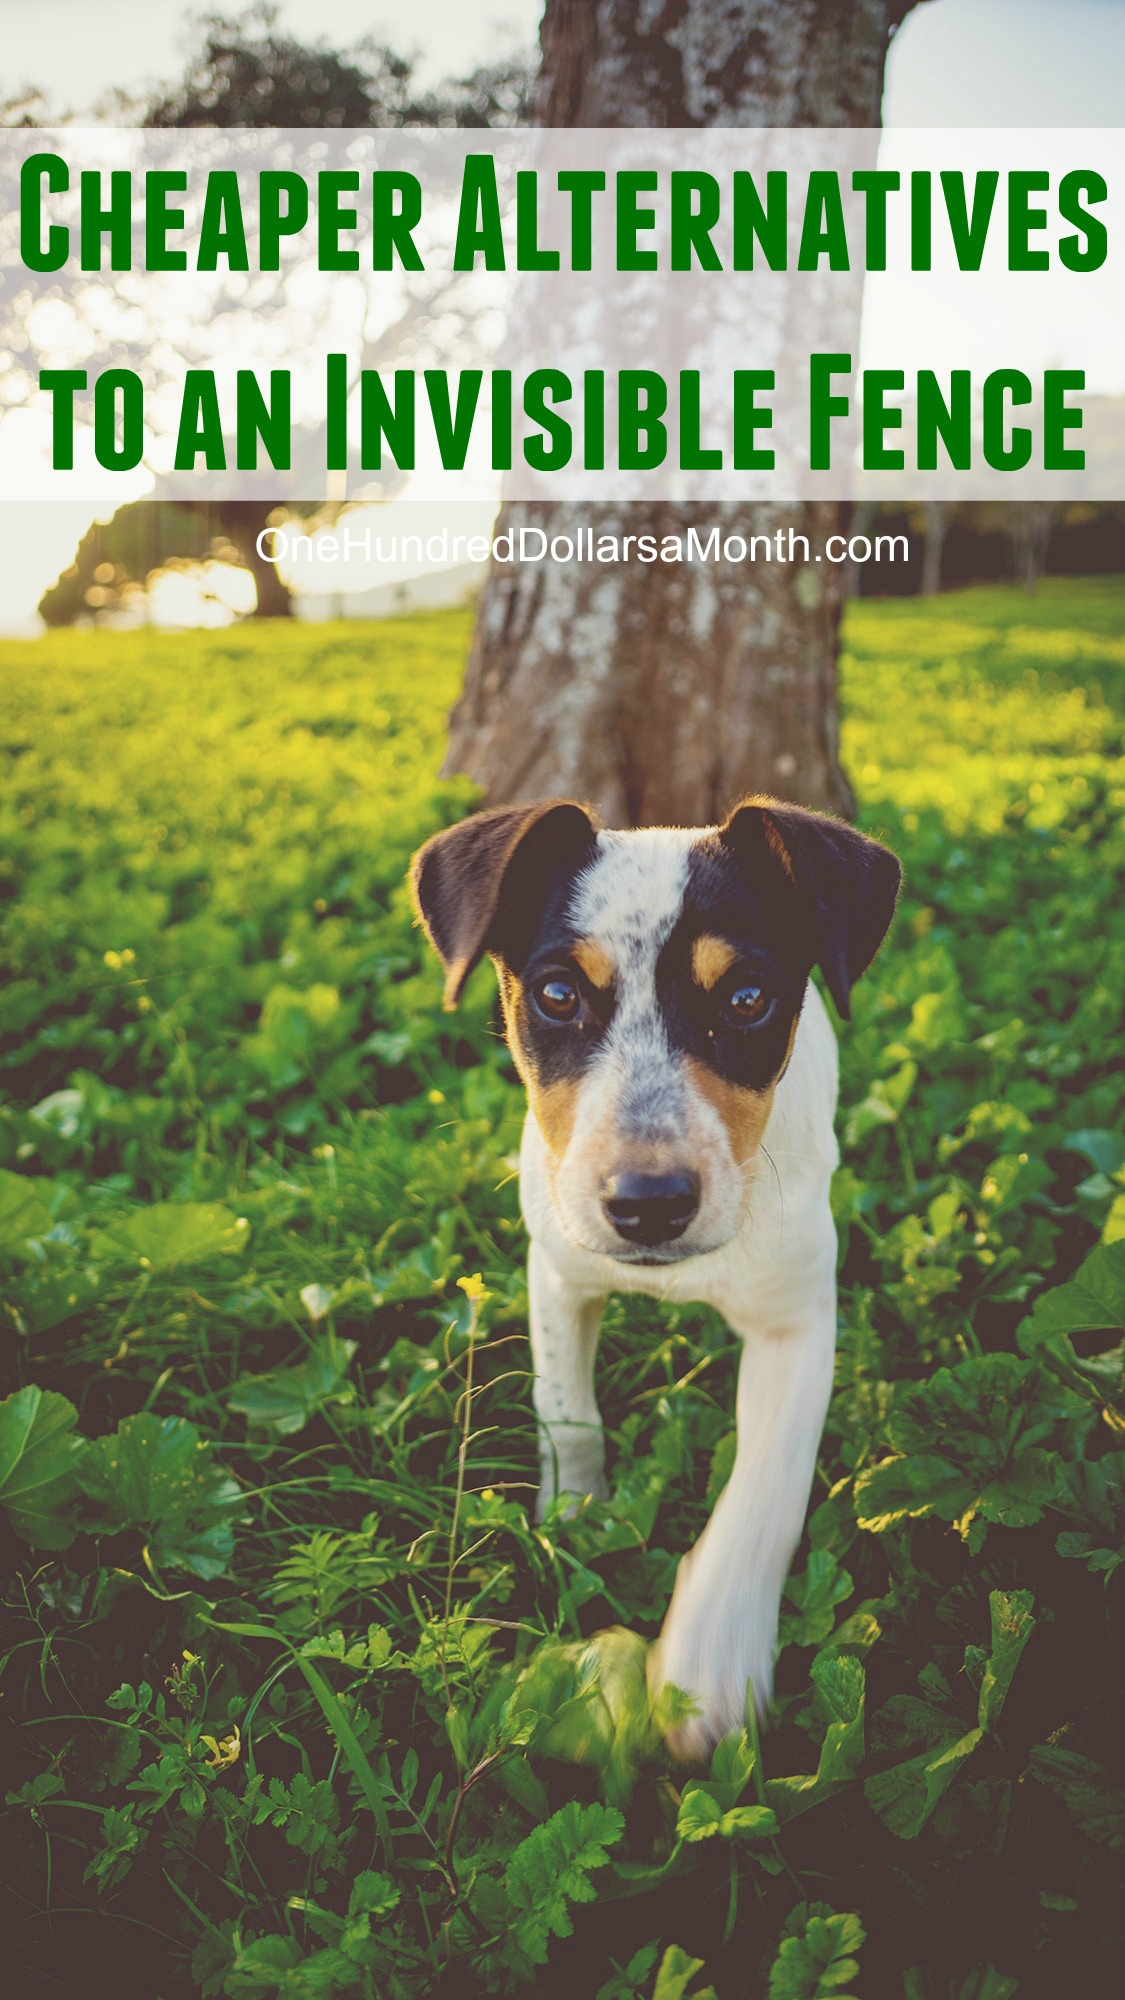 What are the Cheaper Alternatives to Invisible Fence? - One Hundred ...